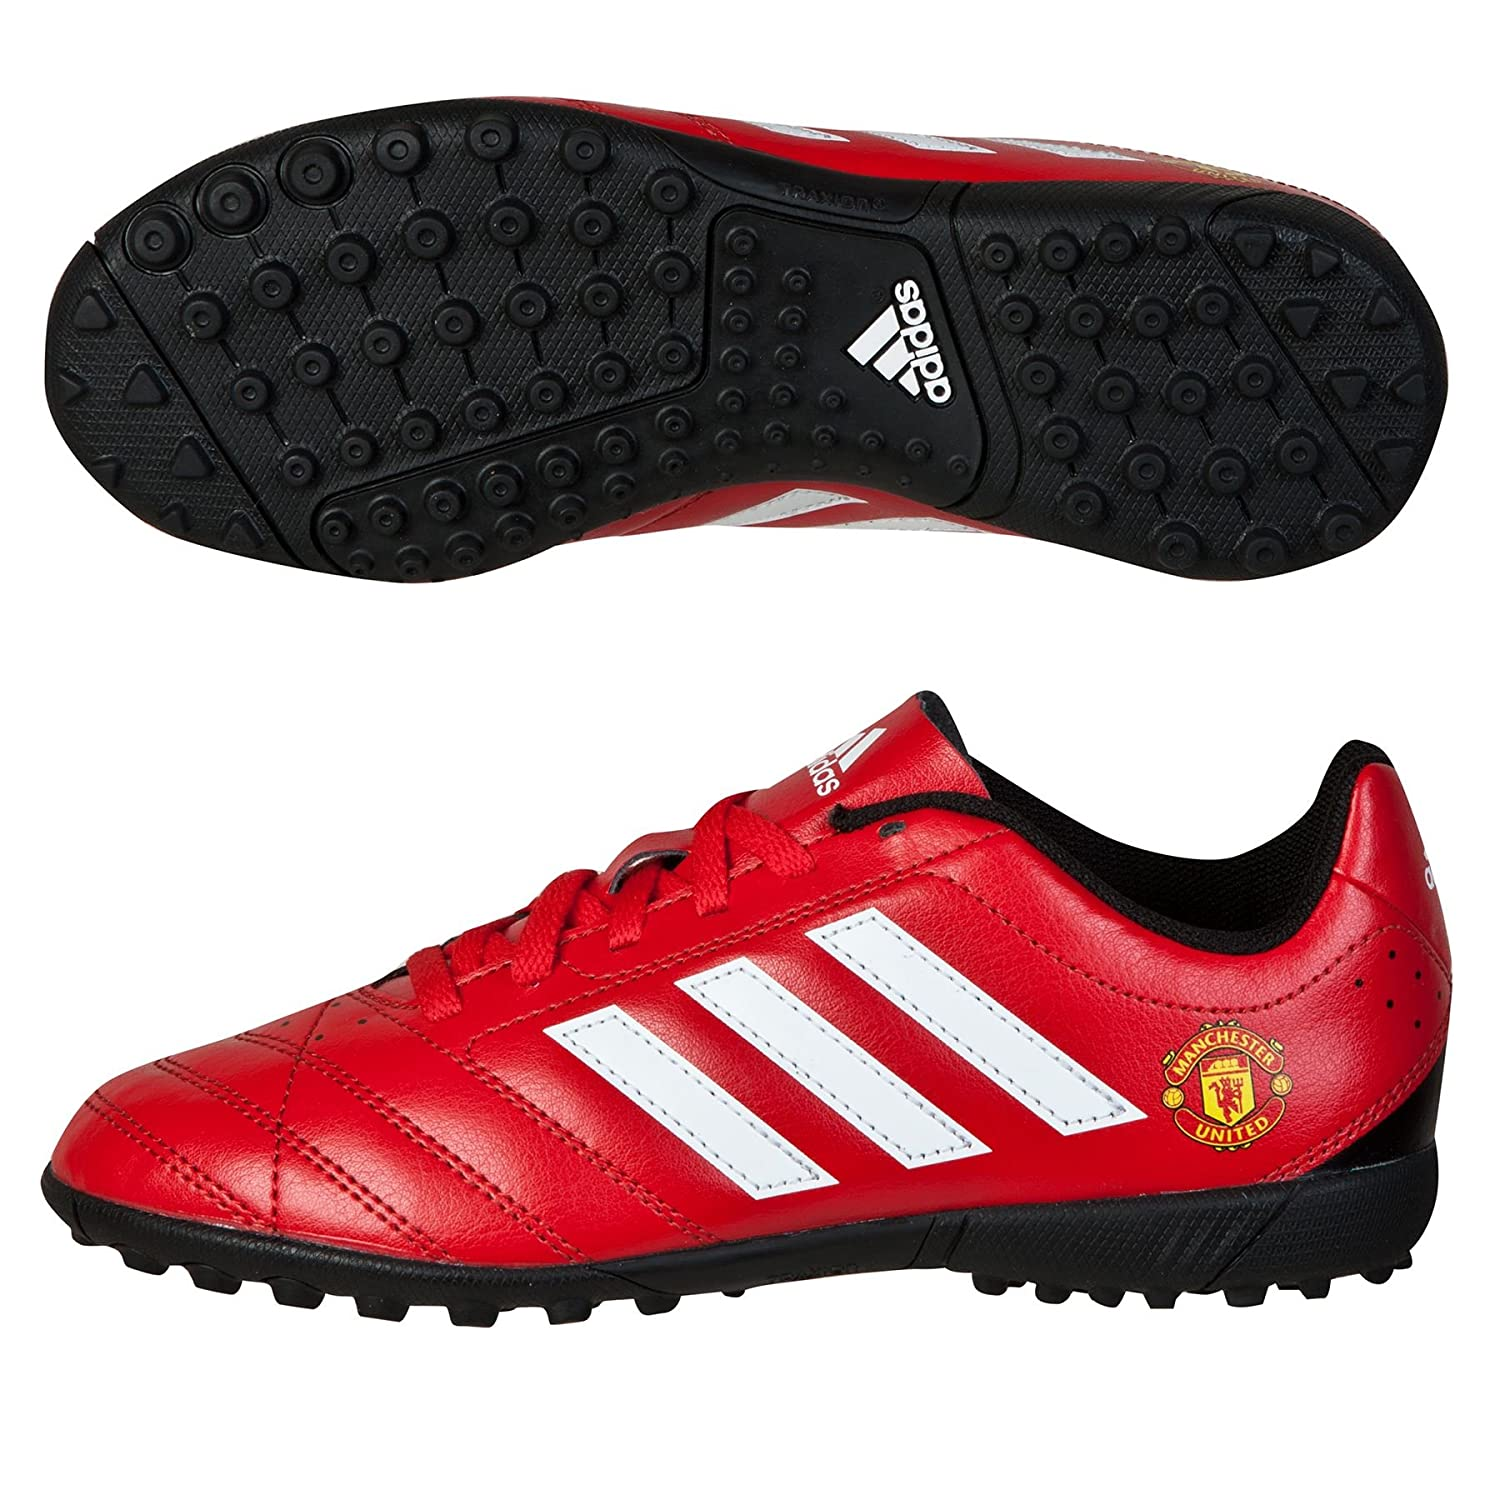 5829ccc7 adidas MUFC Astro Turf Junior Football Soccer Trainer Shoe Red - UK 13:  Amazon.co.uk: Shoes & Bags